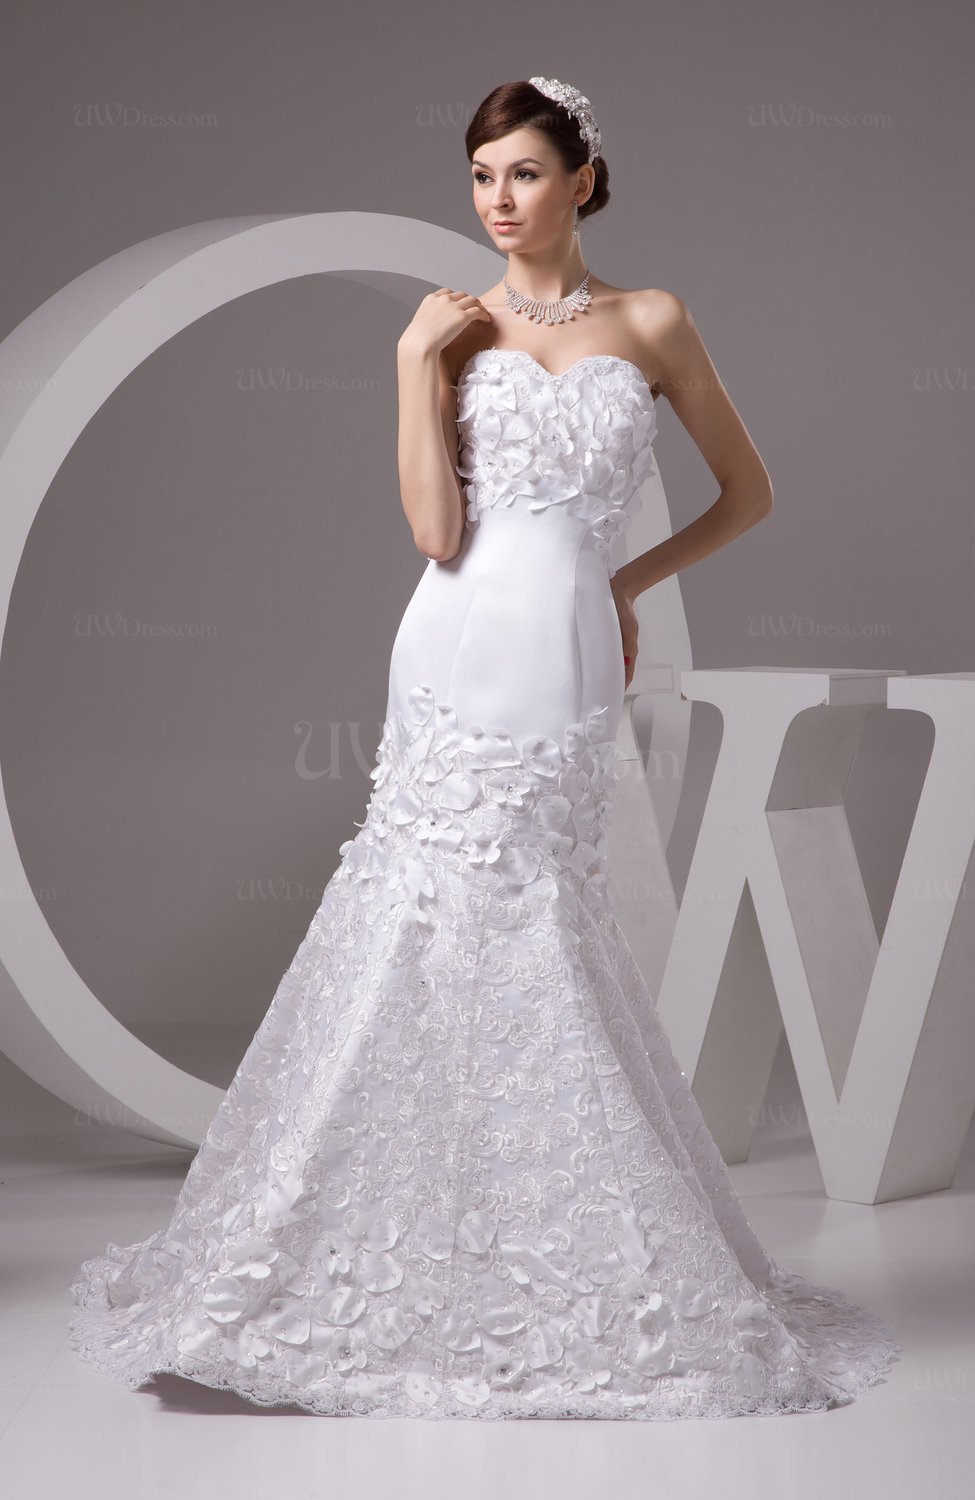 White Allure Bridal Gowns Mermaid Strapless Expensive